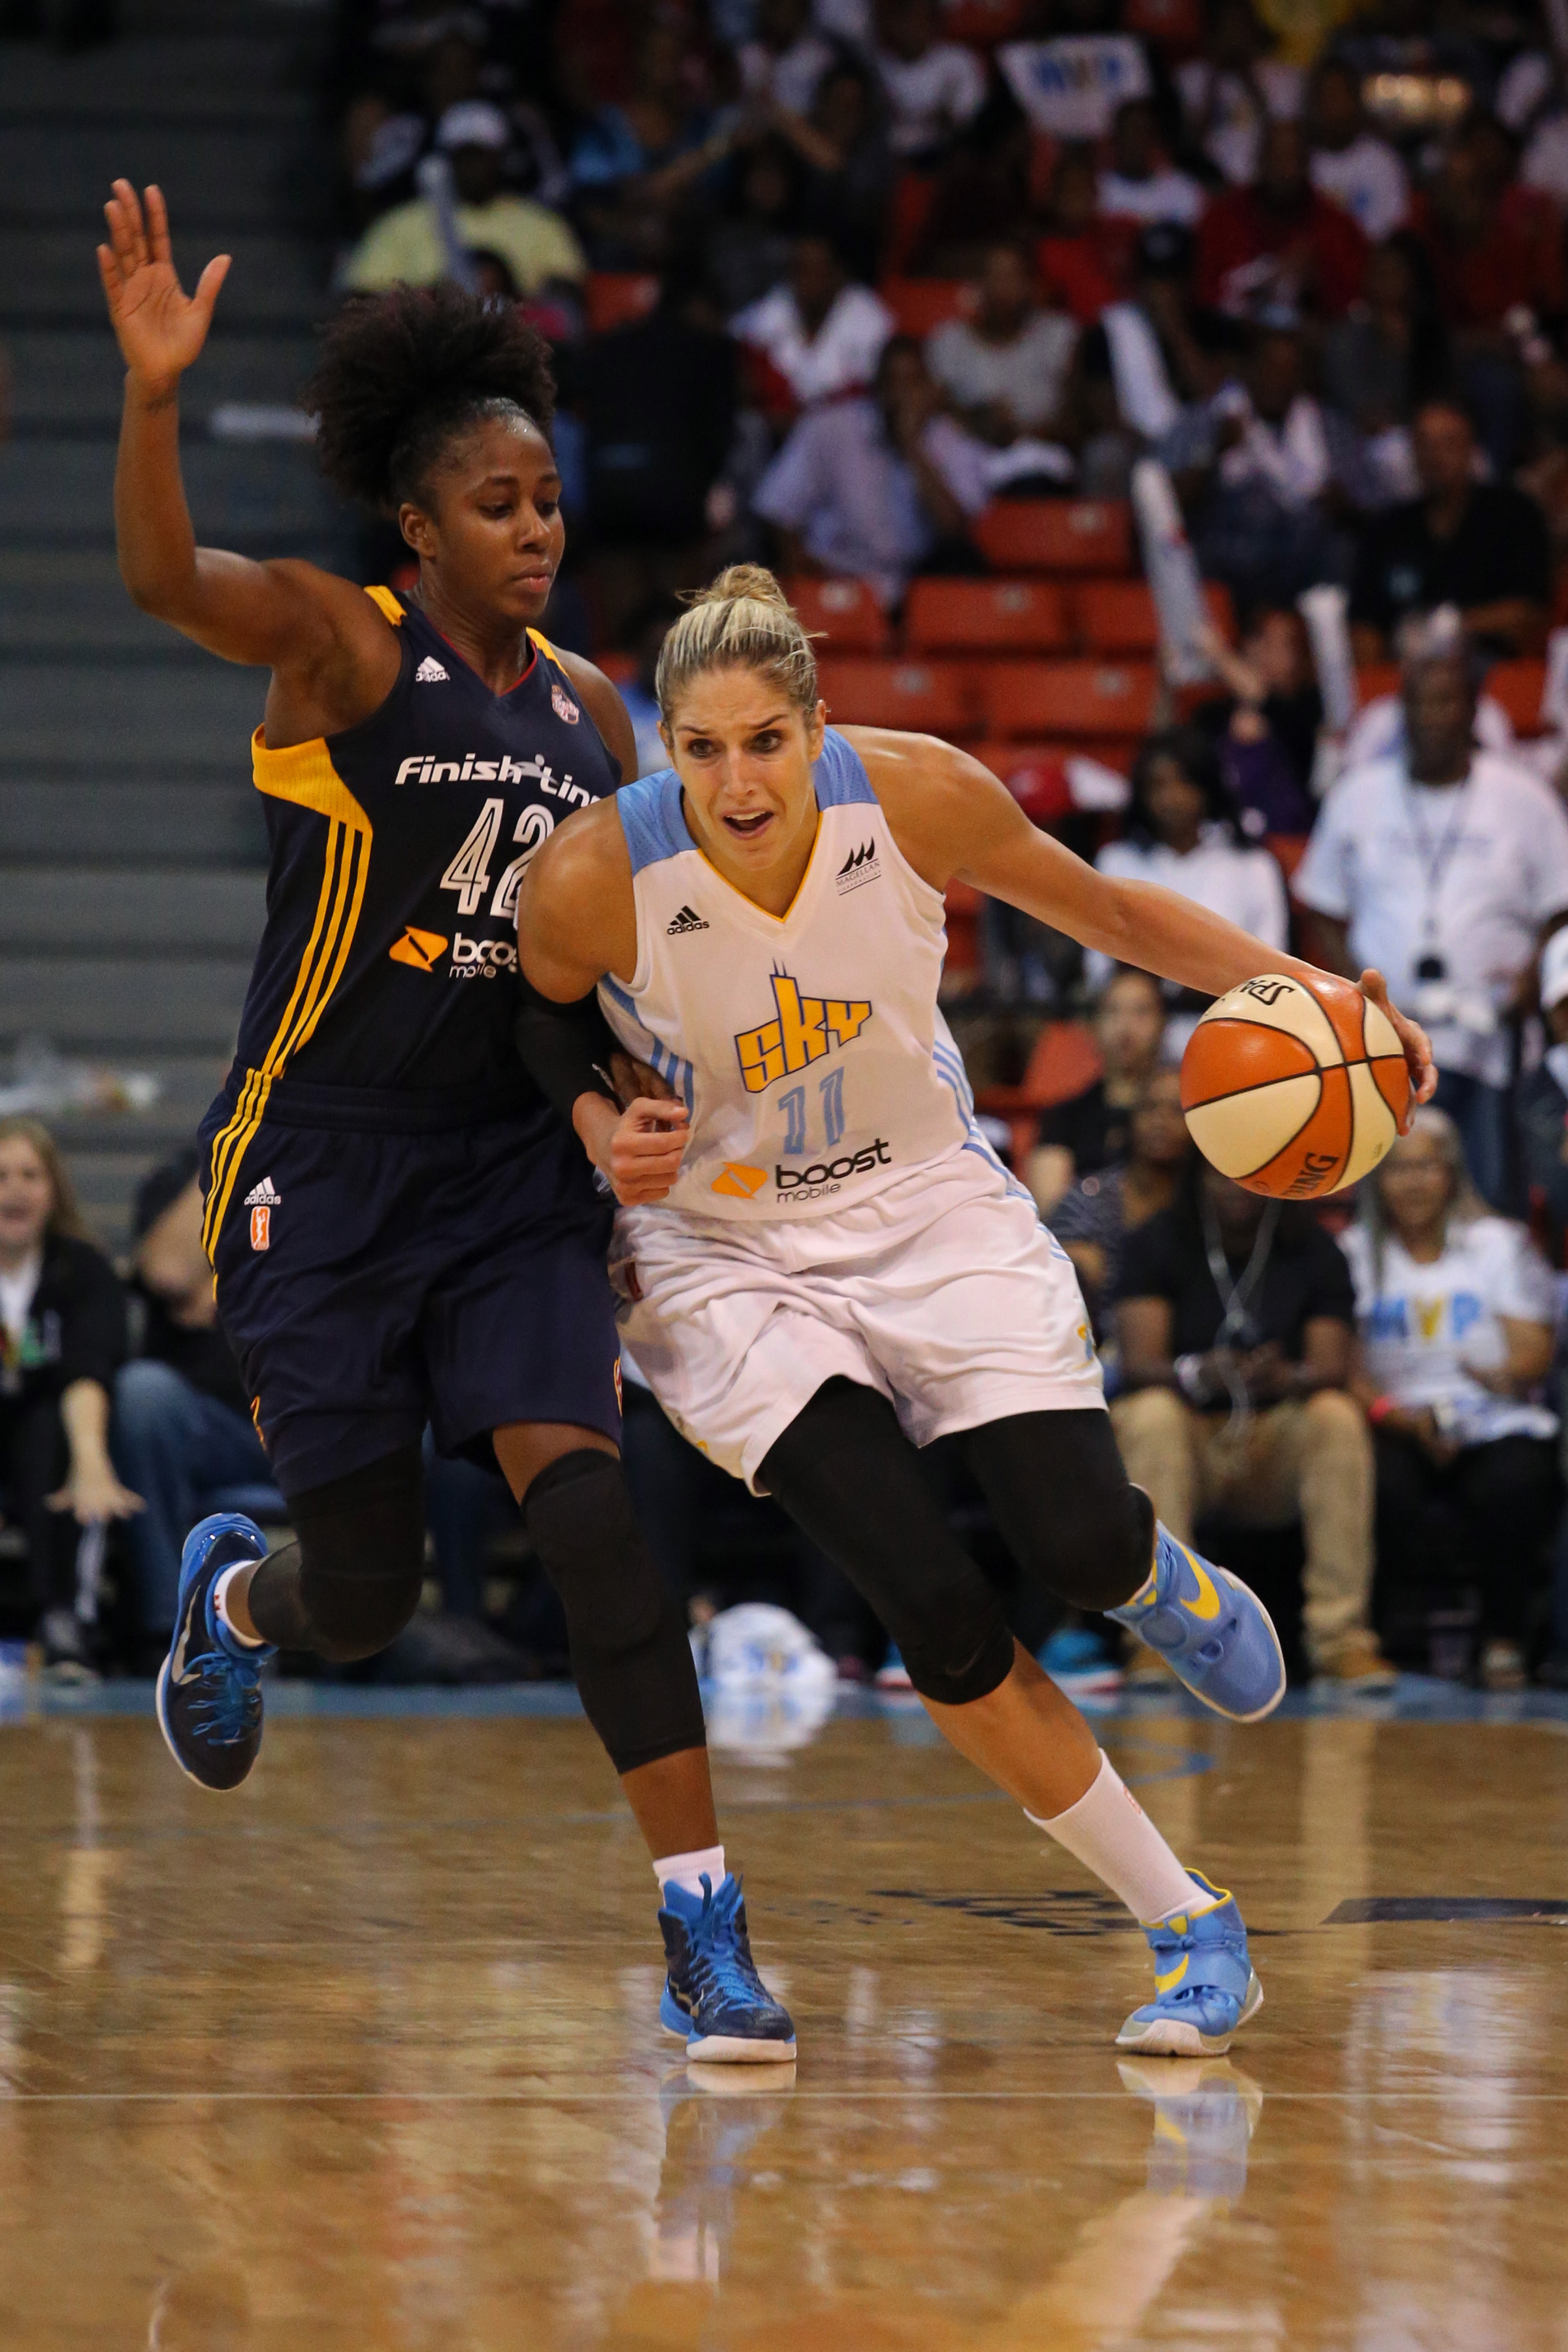 CHICAGO, IL - SEPTEMBER 17:  Elena Delle Donne #11 of the Chicago Sky drives to the basket against the Indiana Fever during Game One of the Eastern Conference Semifinals on September 17, 2015 at UIC Pavilion in Chicago, Illinois. (Photo by Gary Dineen/NBA